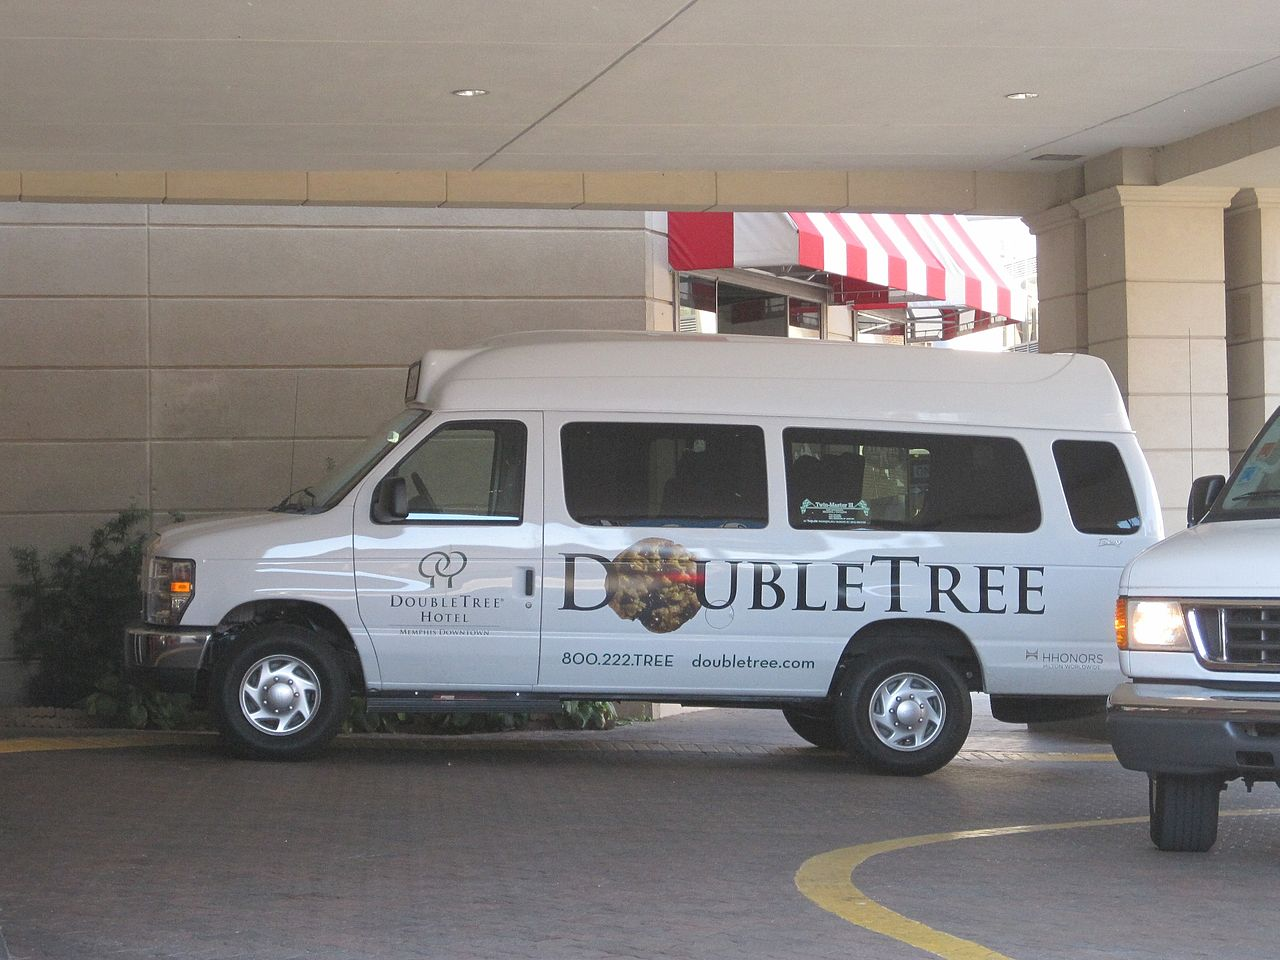 michigan hotel shuttle injury lawyers